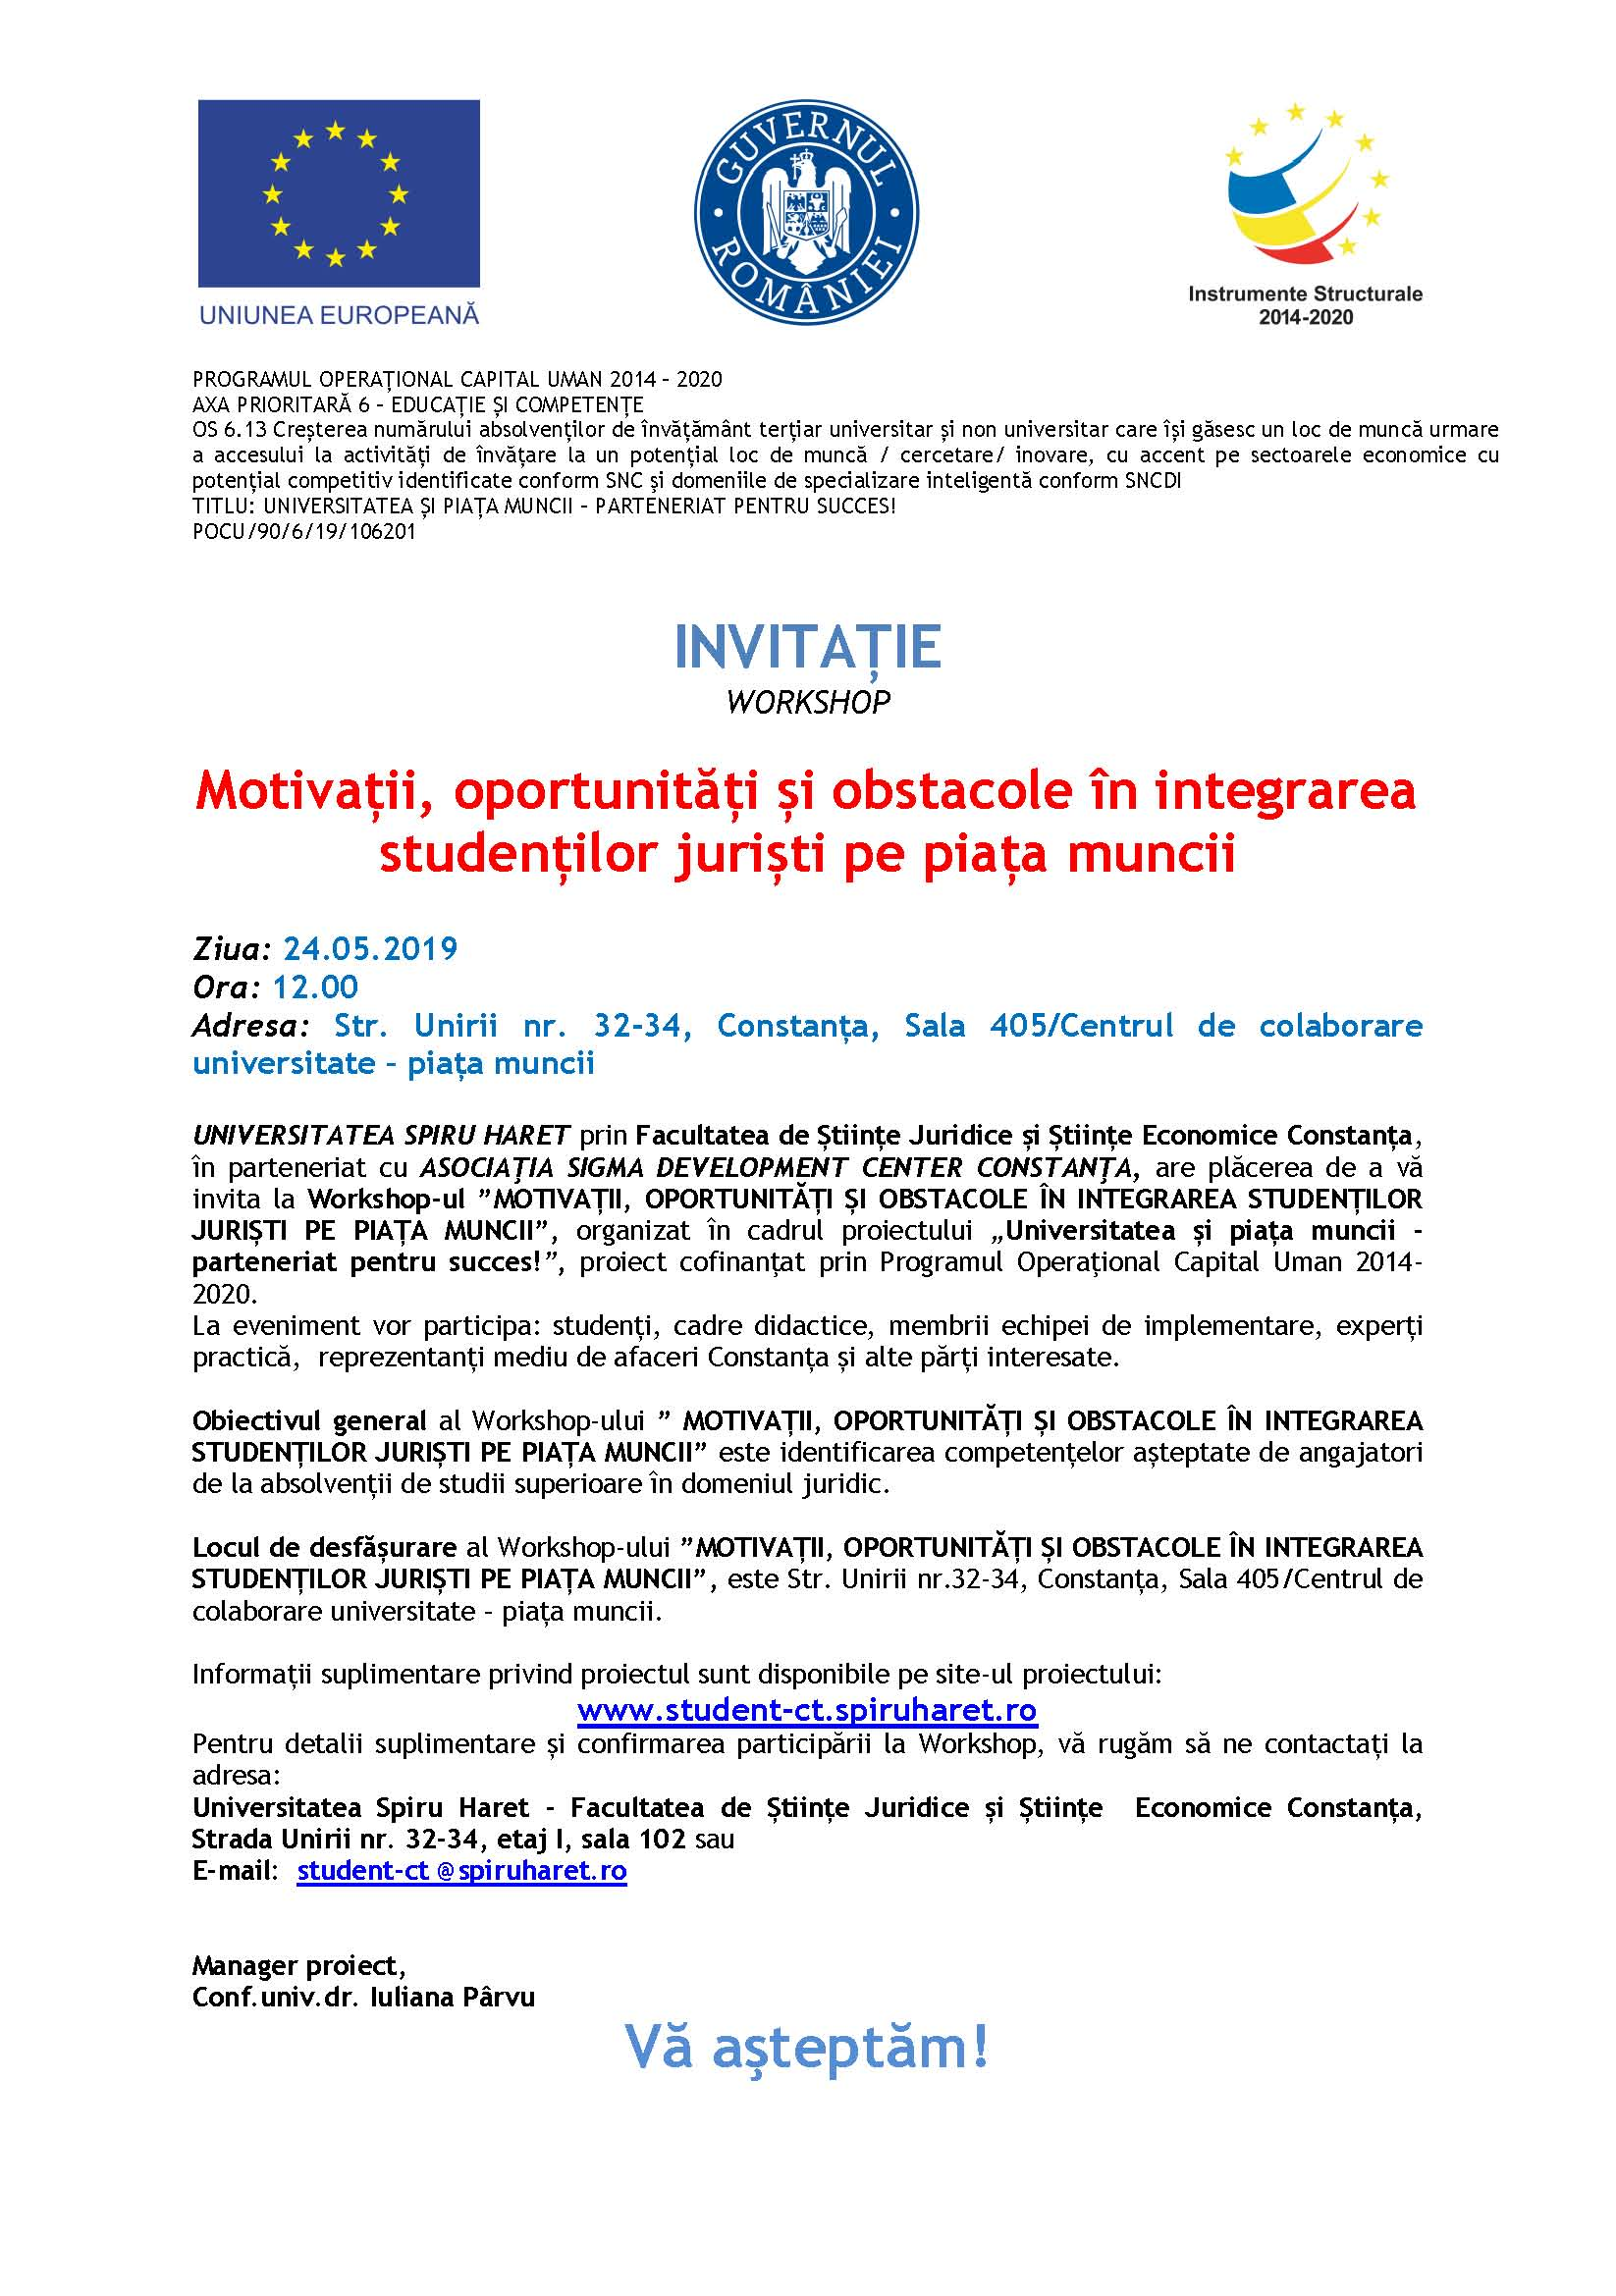 invitatie workshop j 24.05.2019